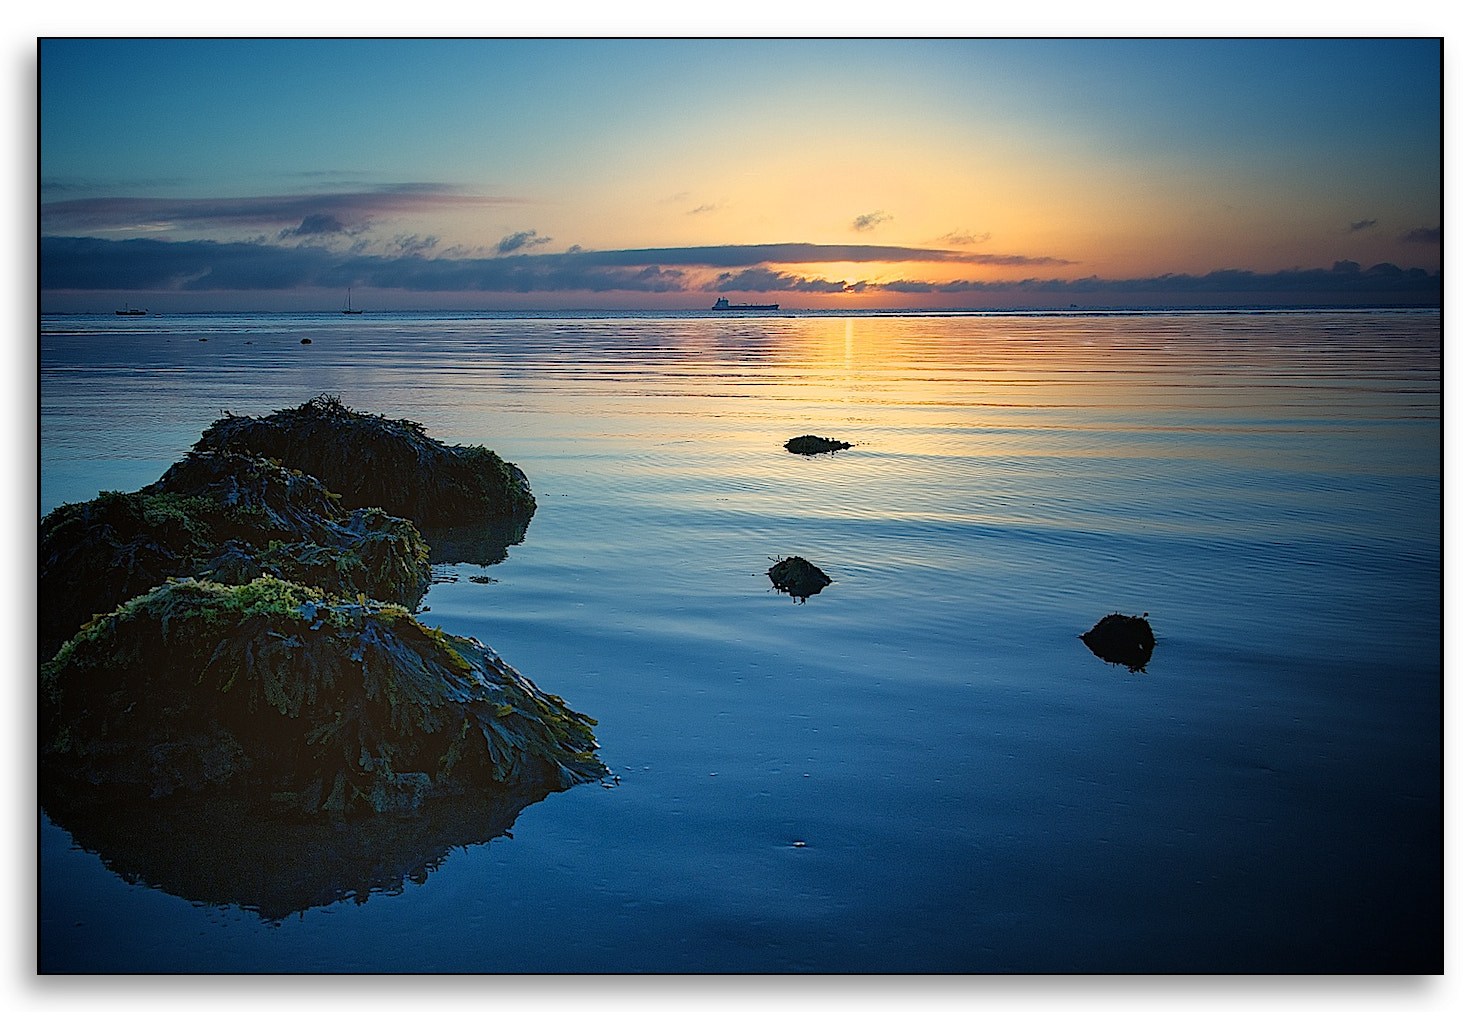 Photograph Early Morning peace by Ian Johnston on 500px